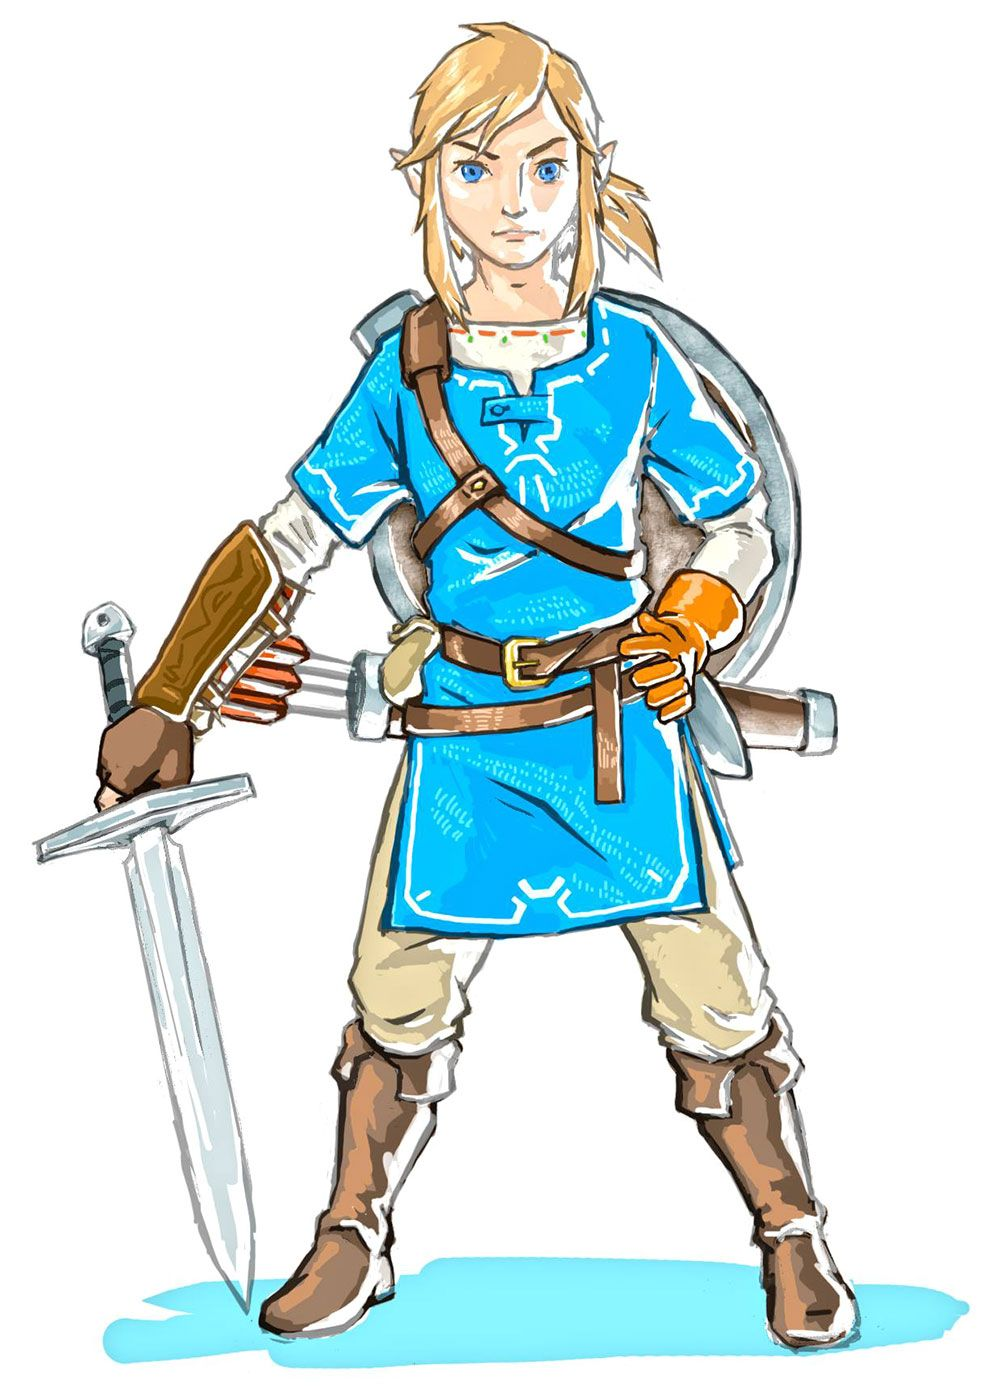 Link breath of the wild clipart picture black and white Link & Sword Concept   The Legend of Zelda   Legend of zelda ... picture black and white